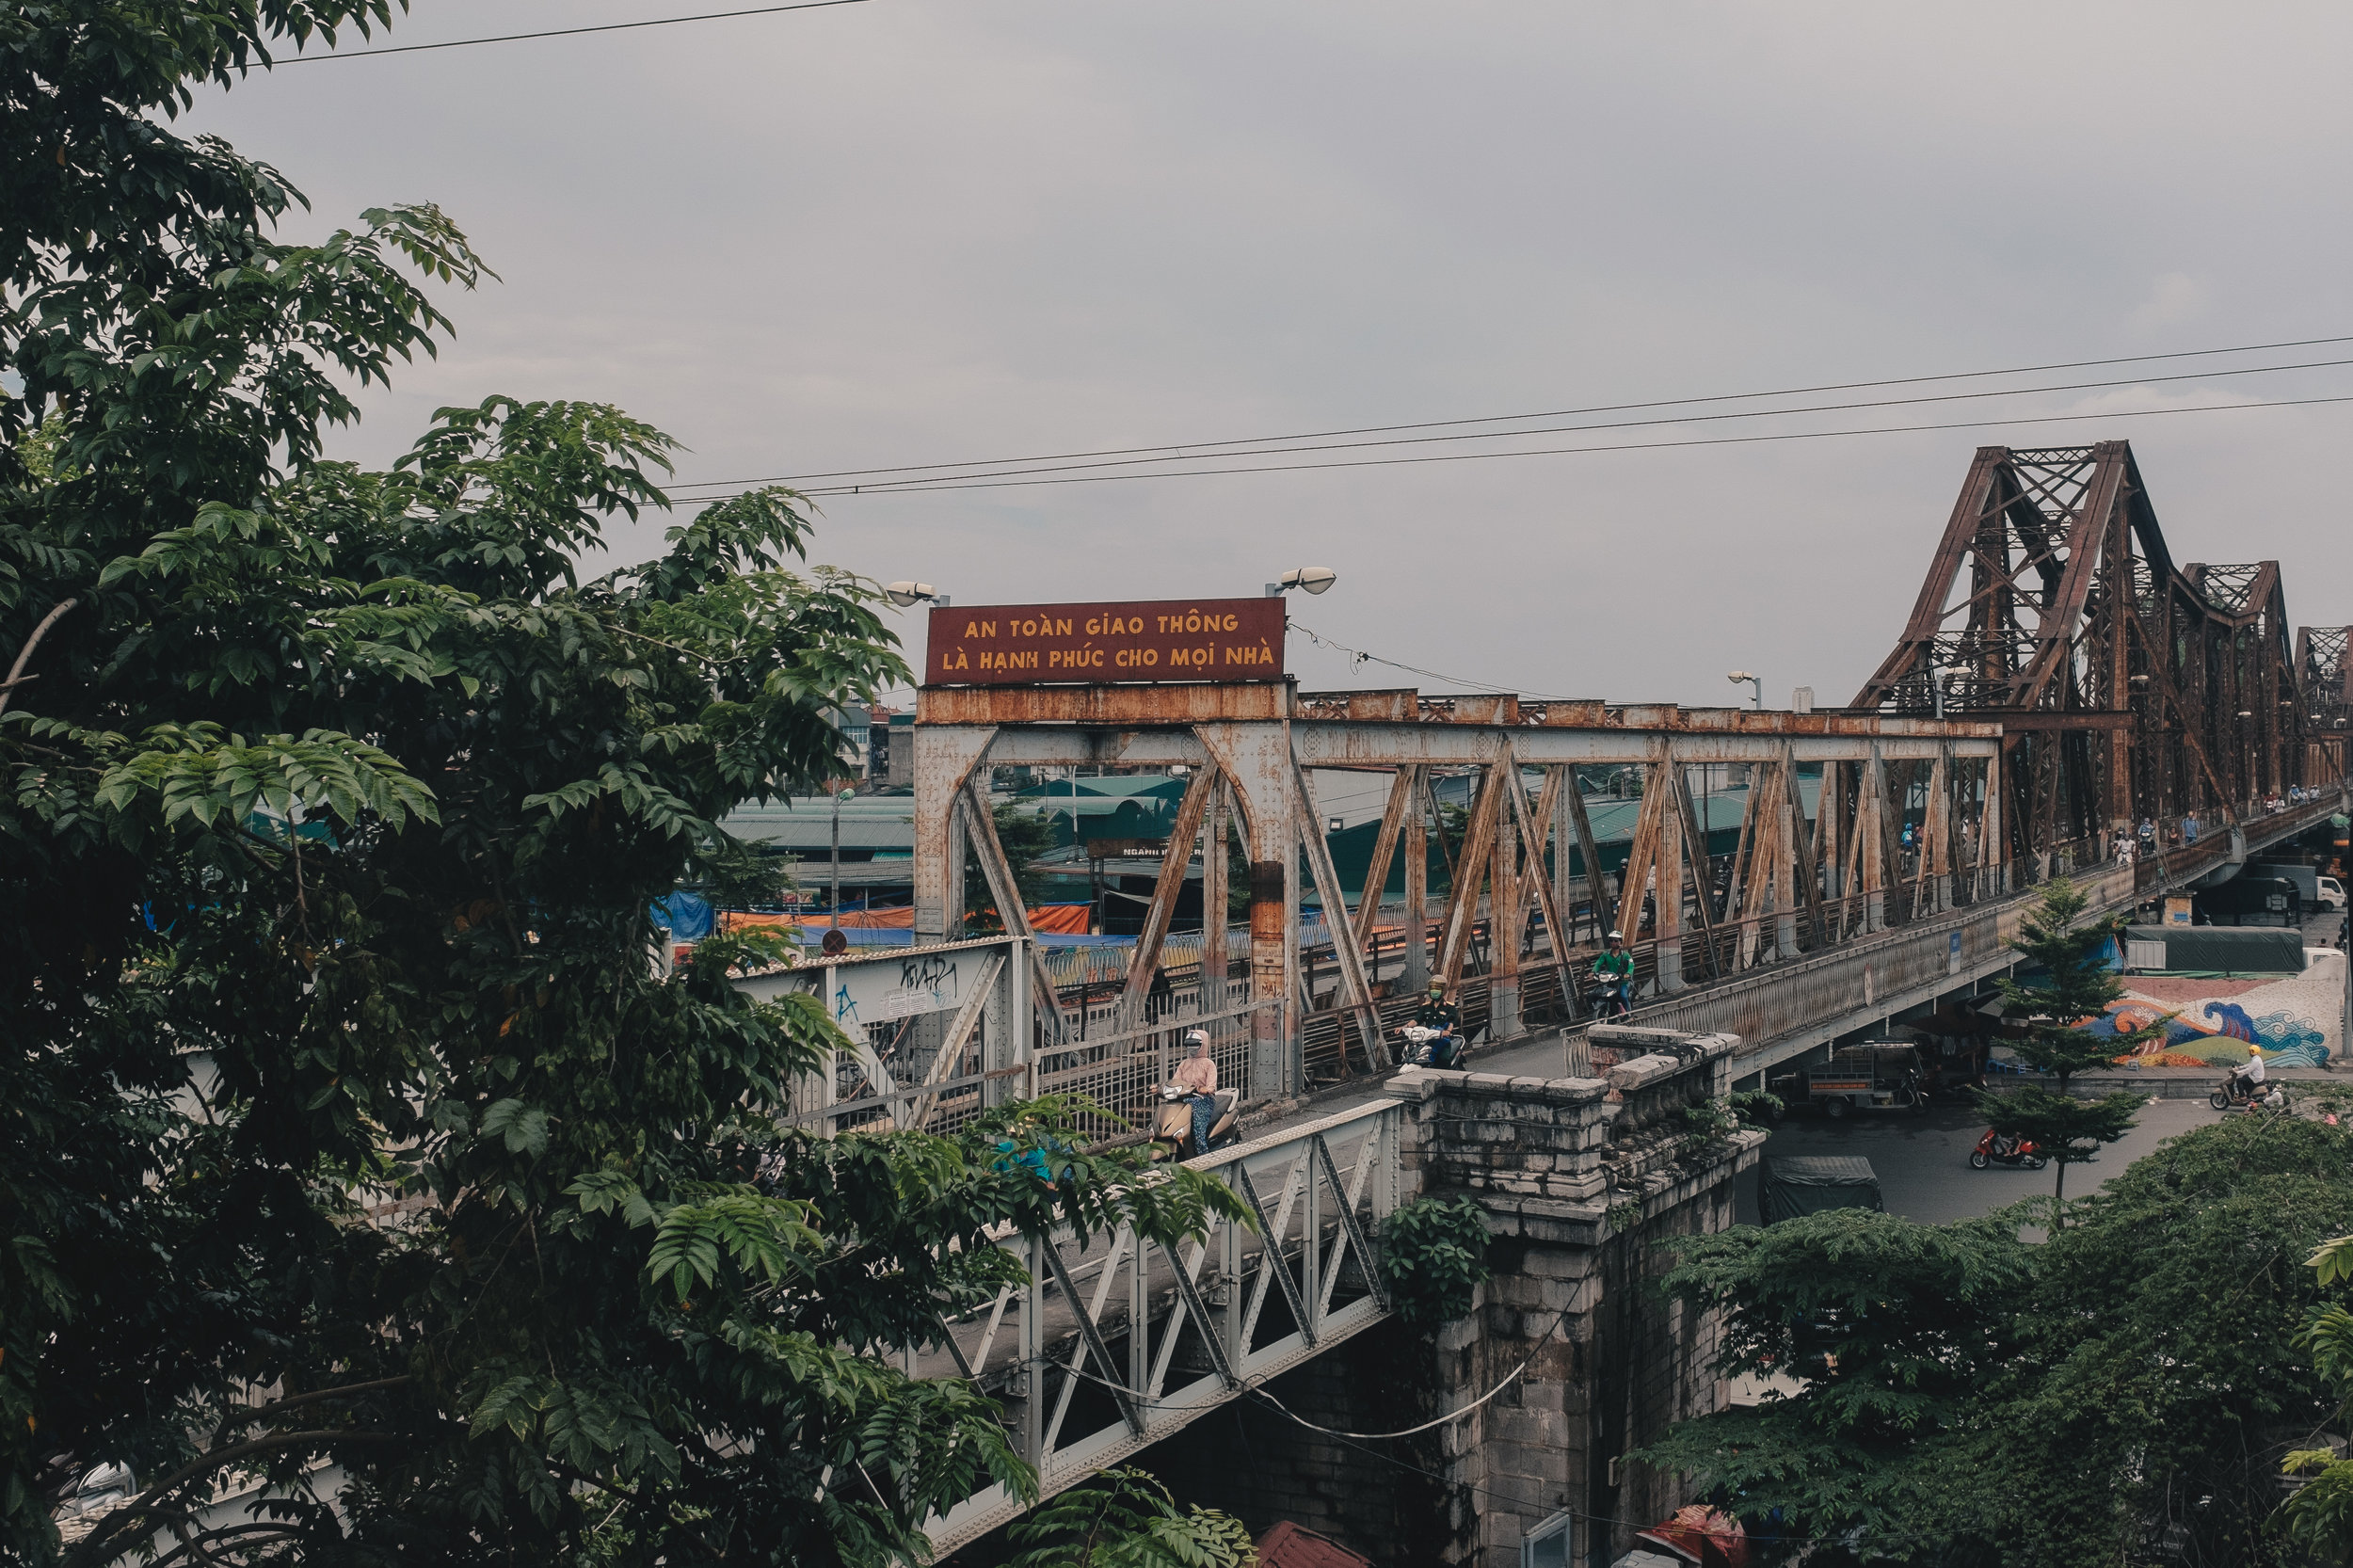 Built in 1903, the Long Bien Bridge still remains critically important to the city both as a transport link and as a cultural icon - its also the view from Serein, a cafe in Hanoi